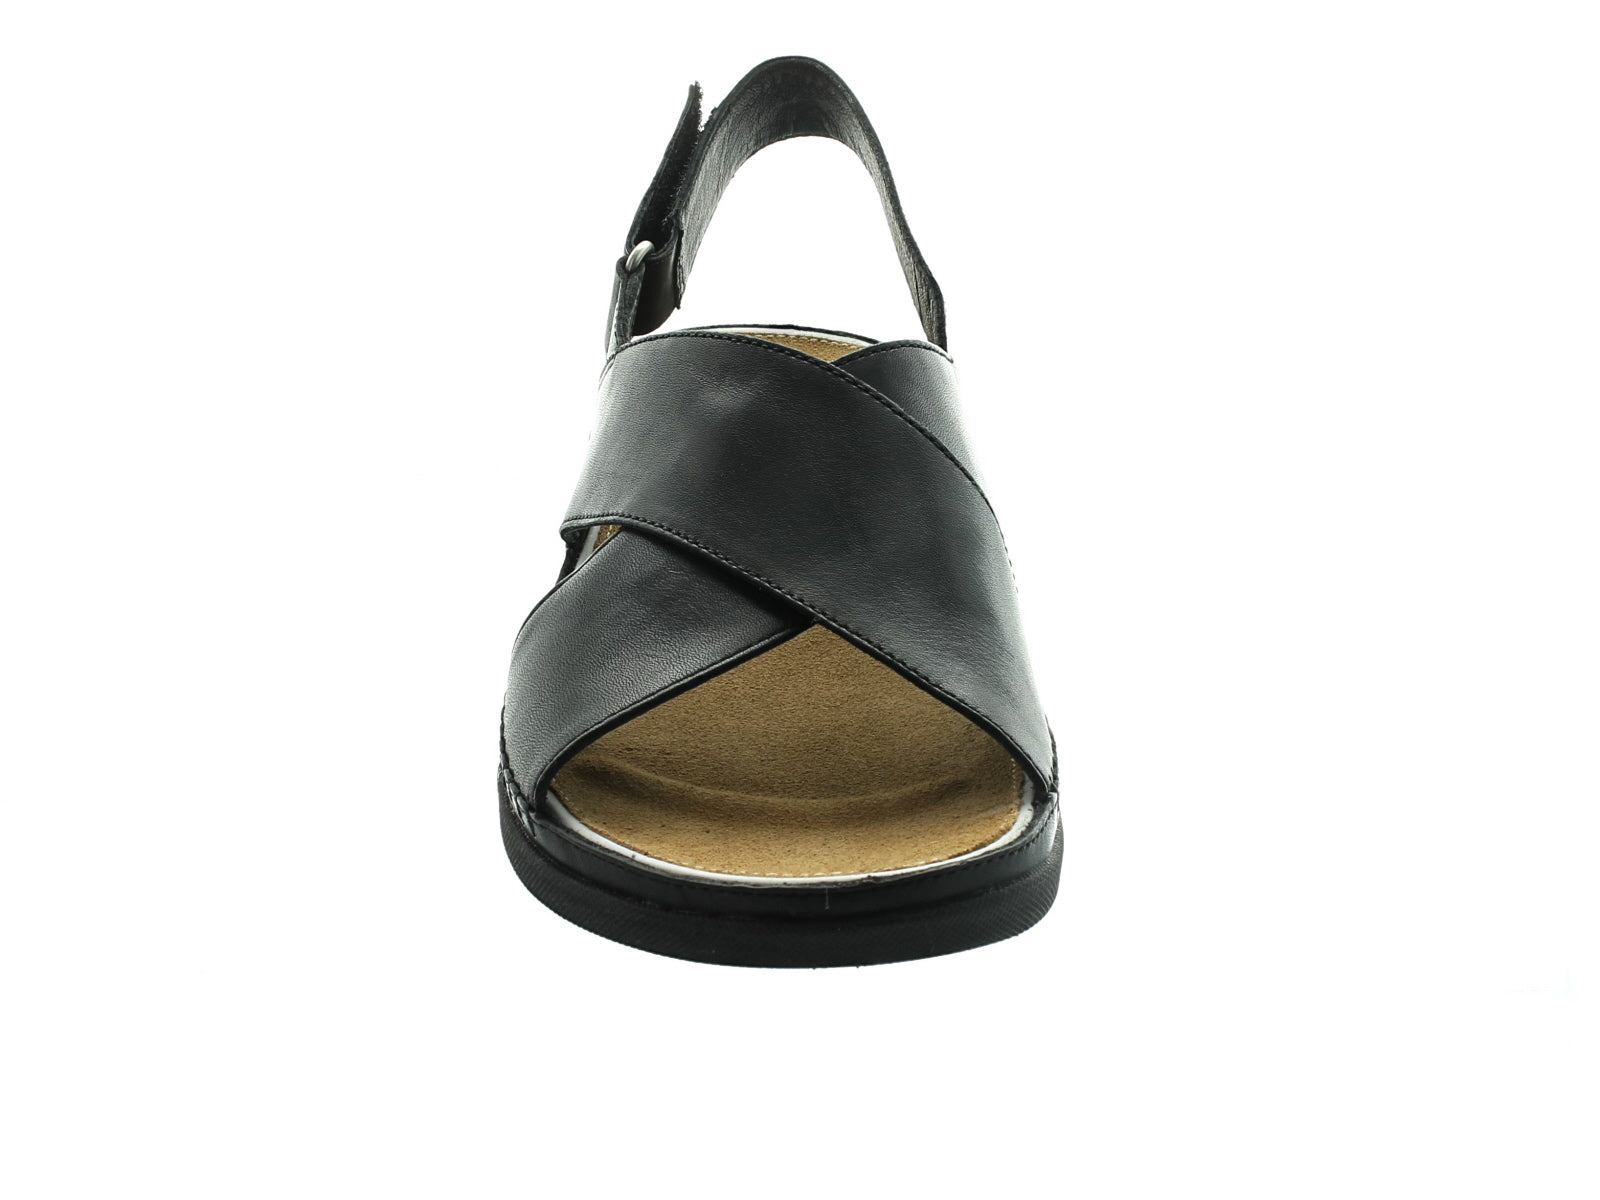 Clarks Tri Alexia in Black Leather front view